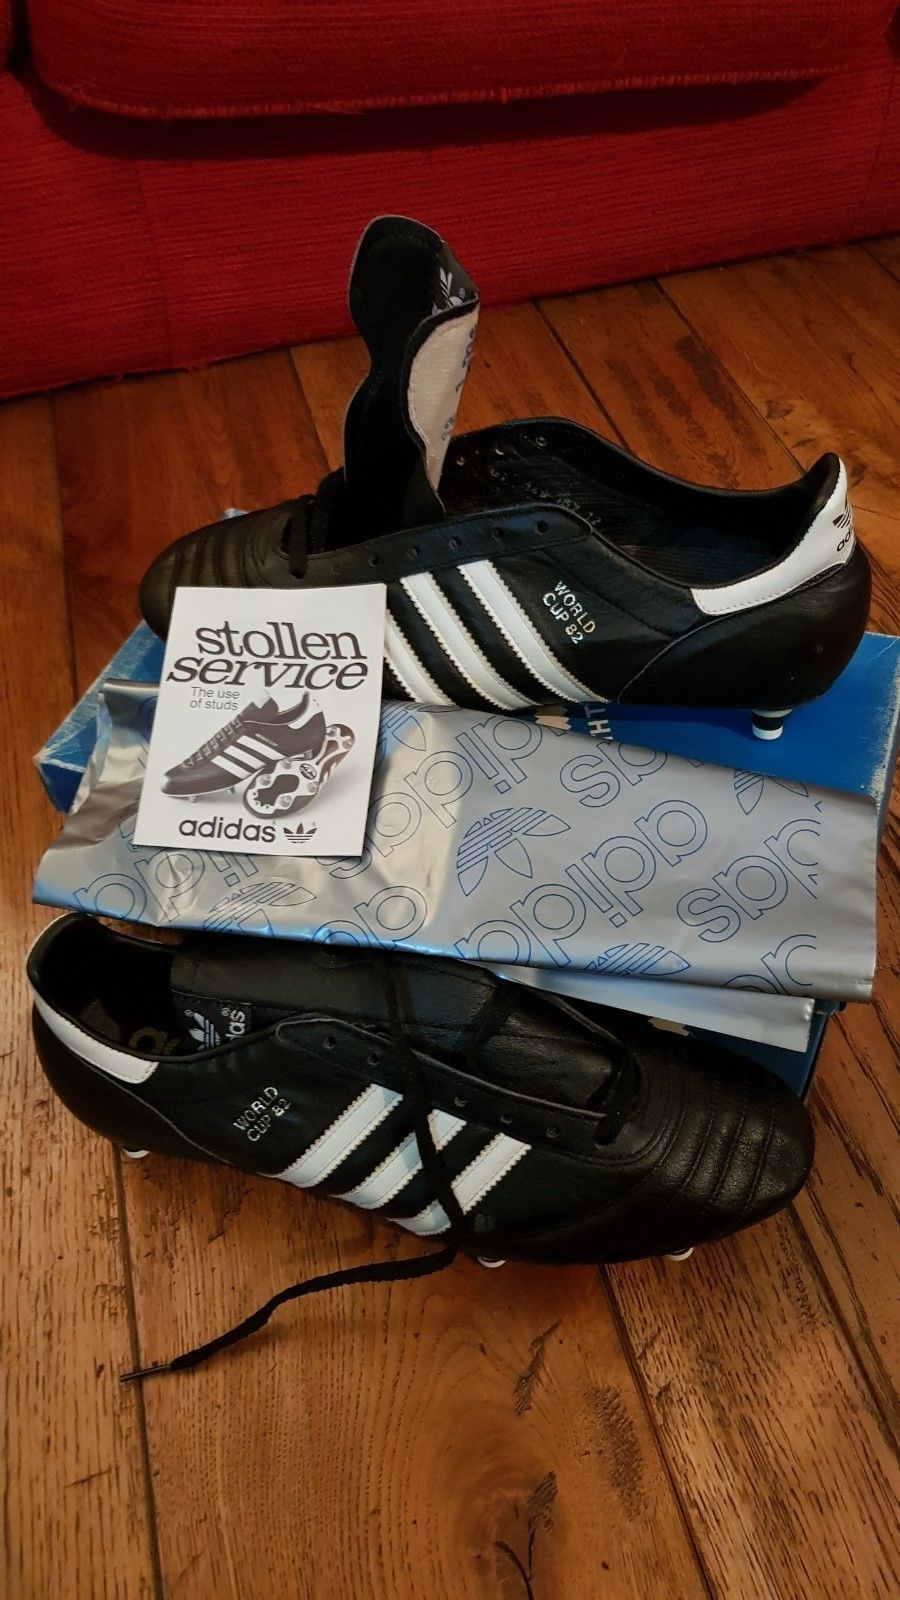 62293e4cd0f Details about ADIDAS VINTAGE SHOES WORLD CUP 82 NEW IN BOX FOOTBALL RARE  80s WEST GERMANY